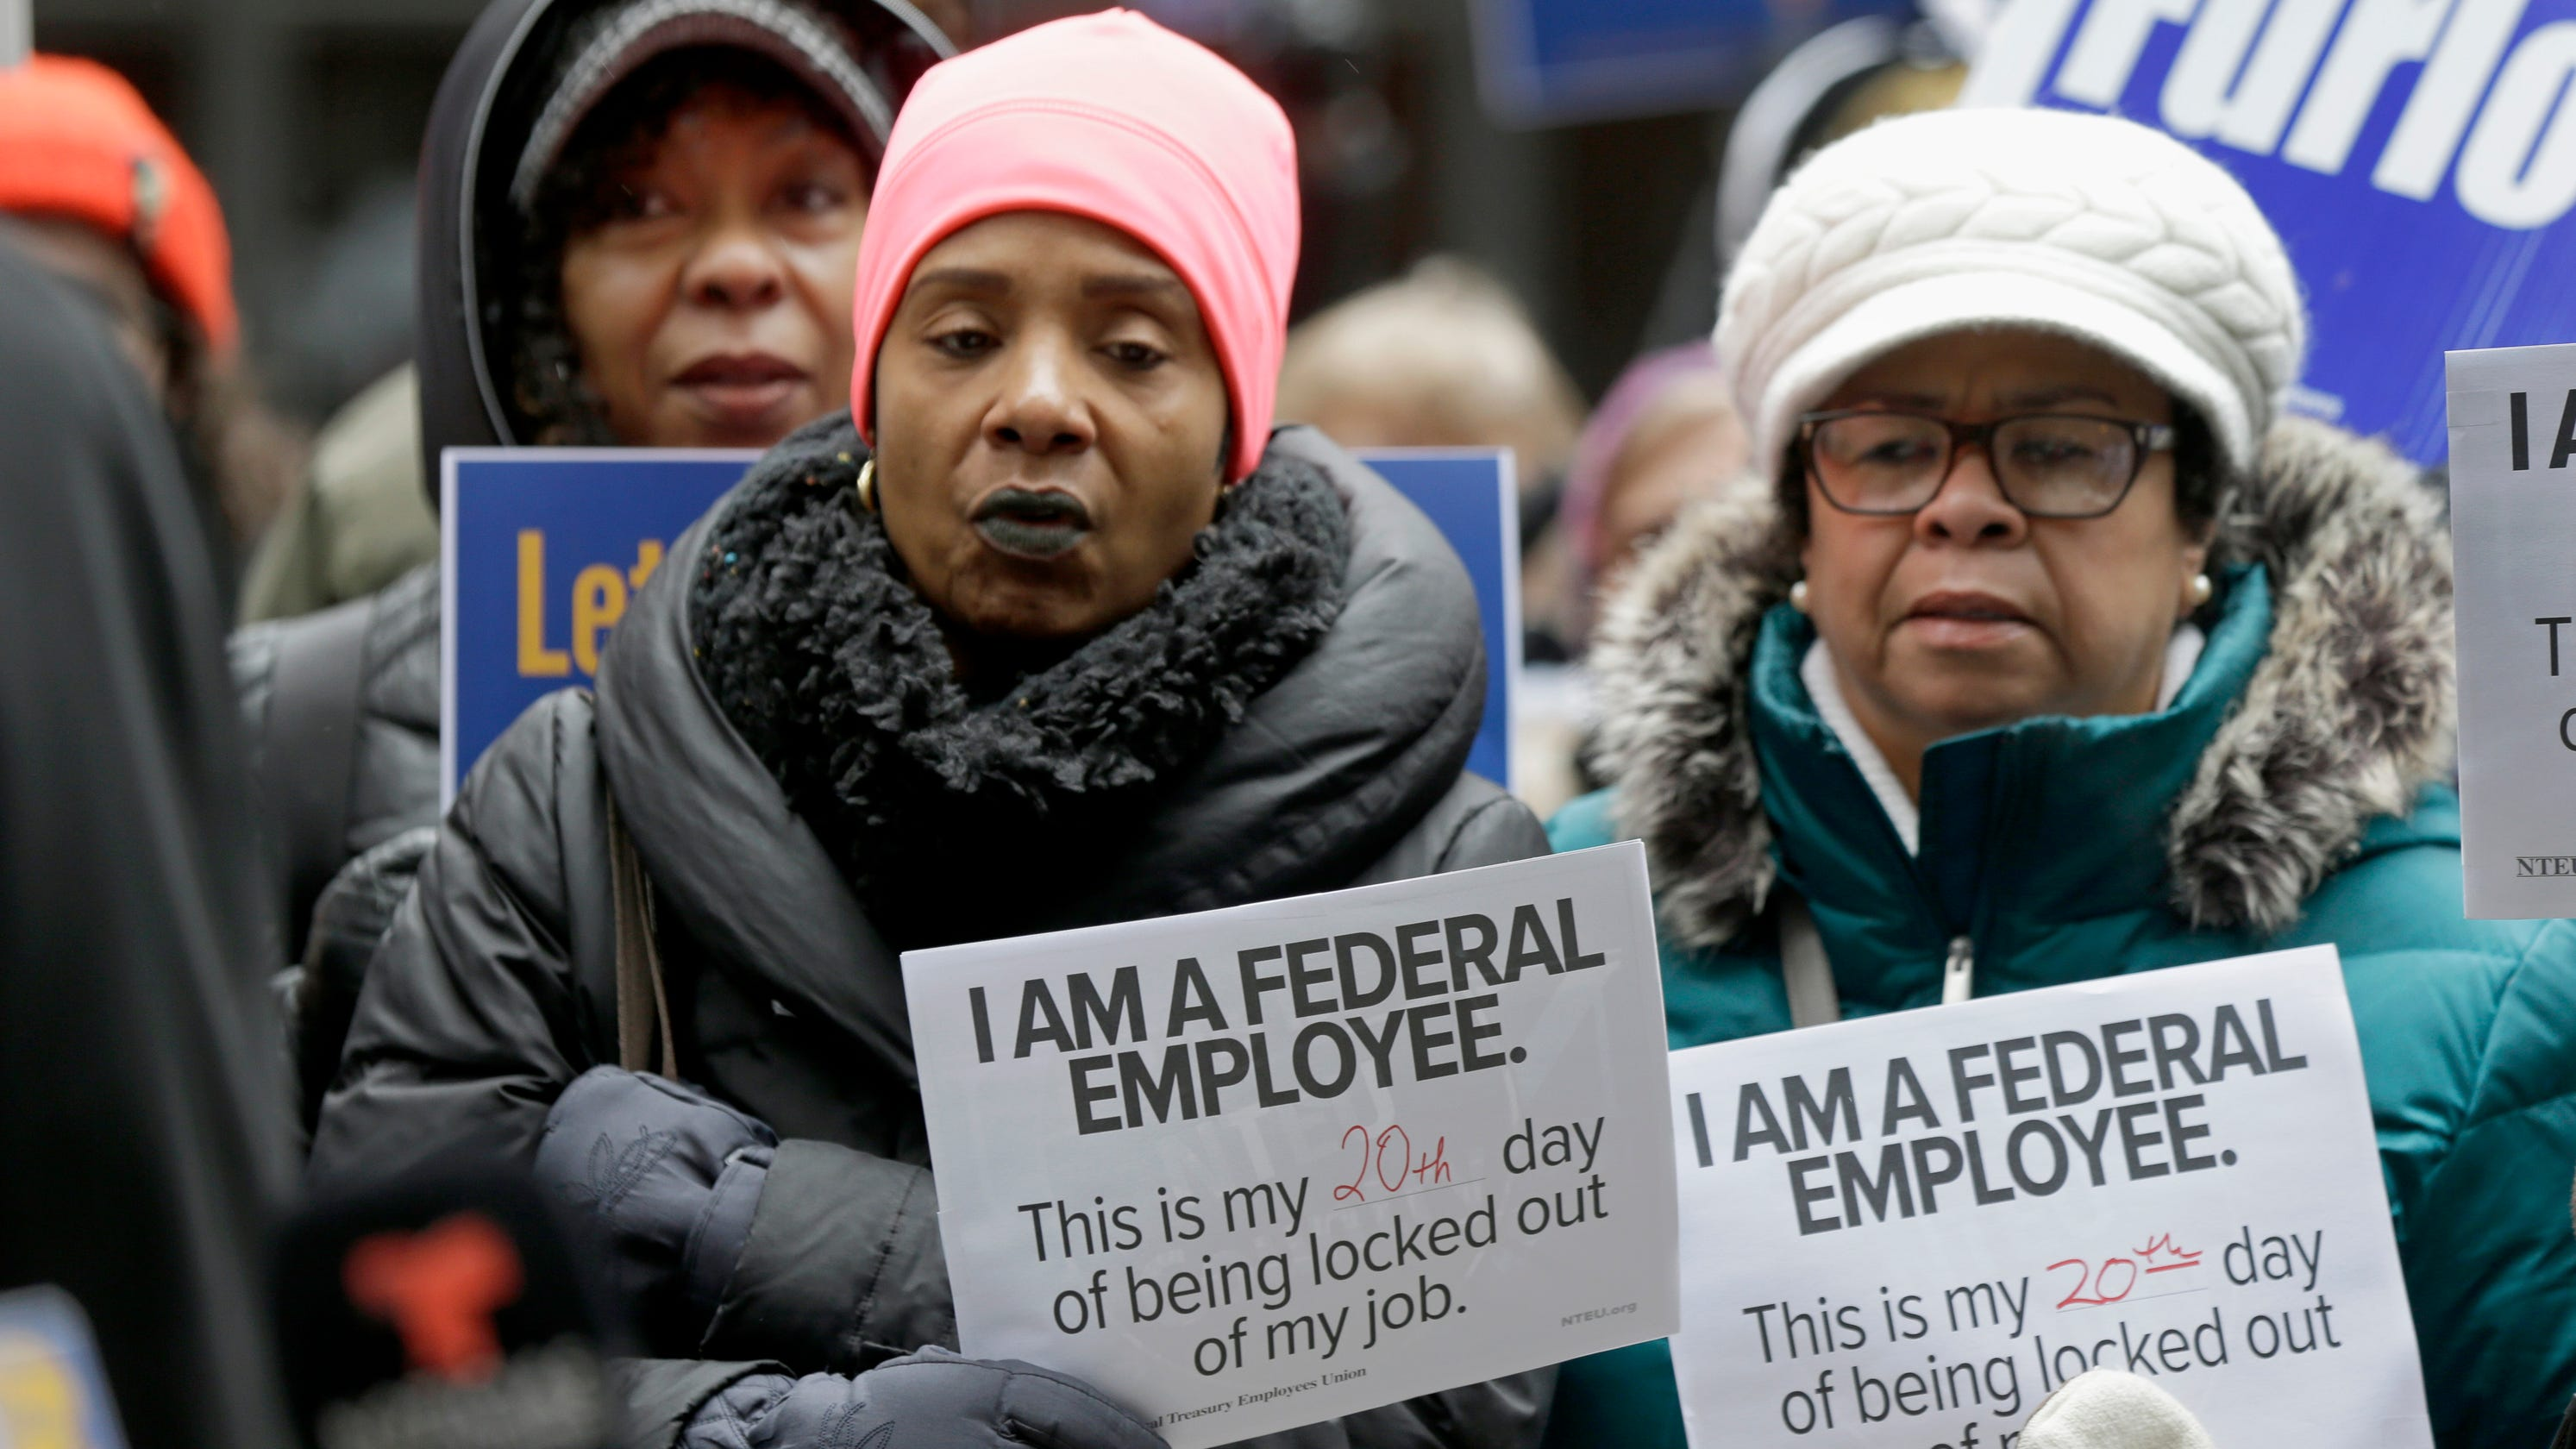 Paychecks for thousands of federal workers on hold as government shutdown nears fourth week